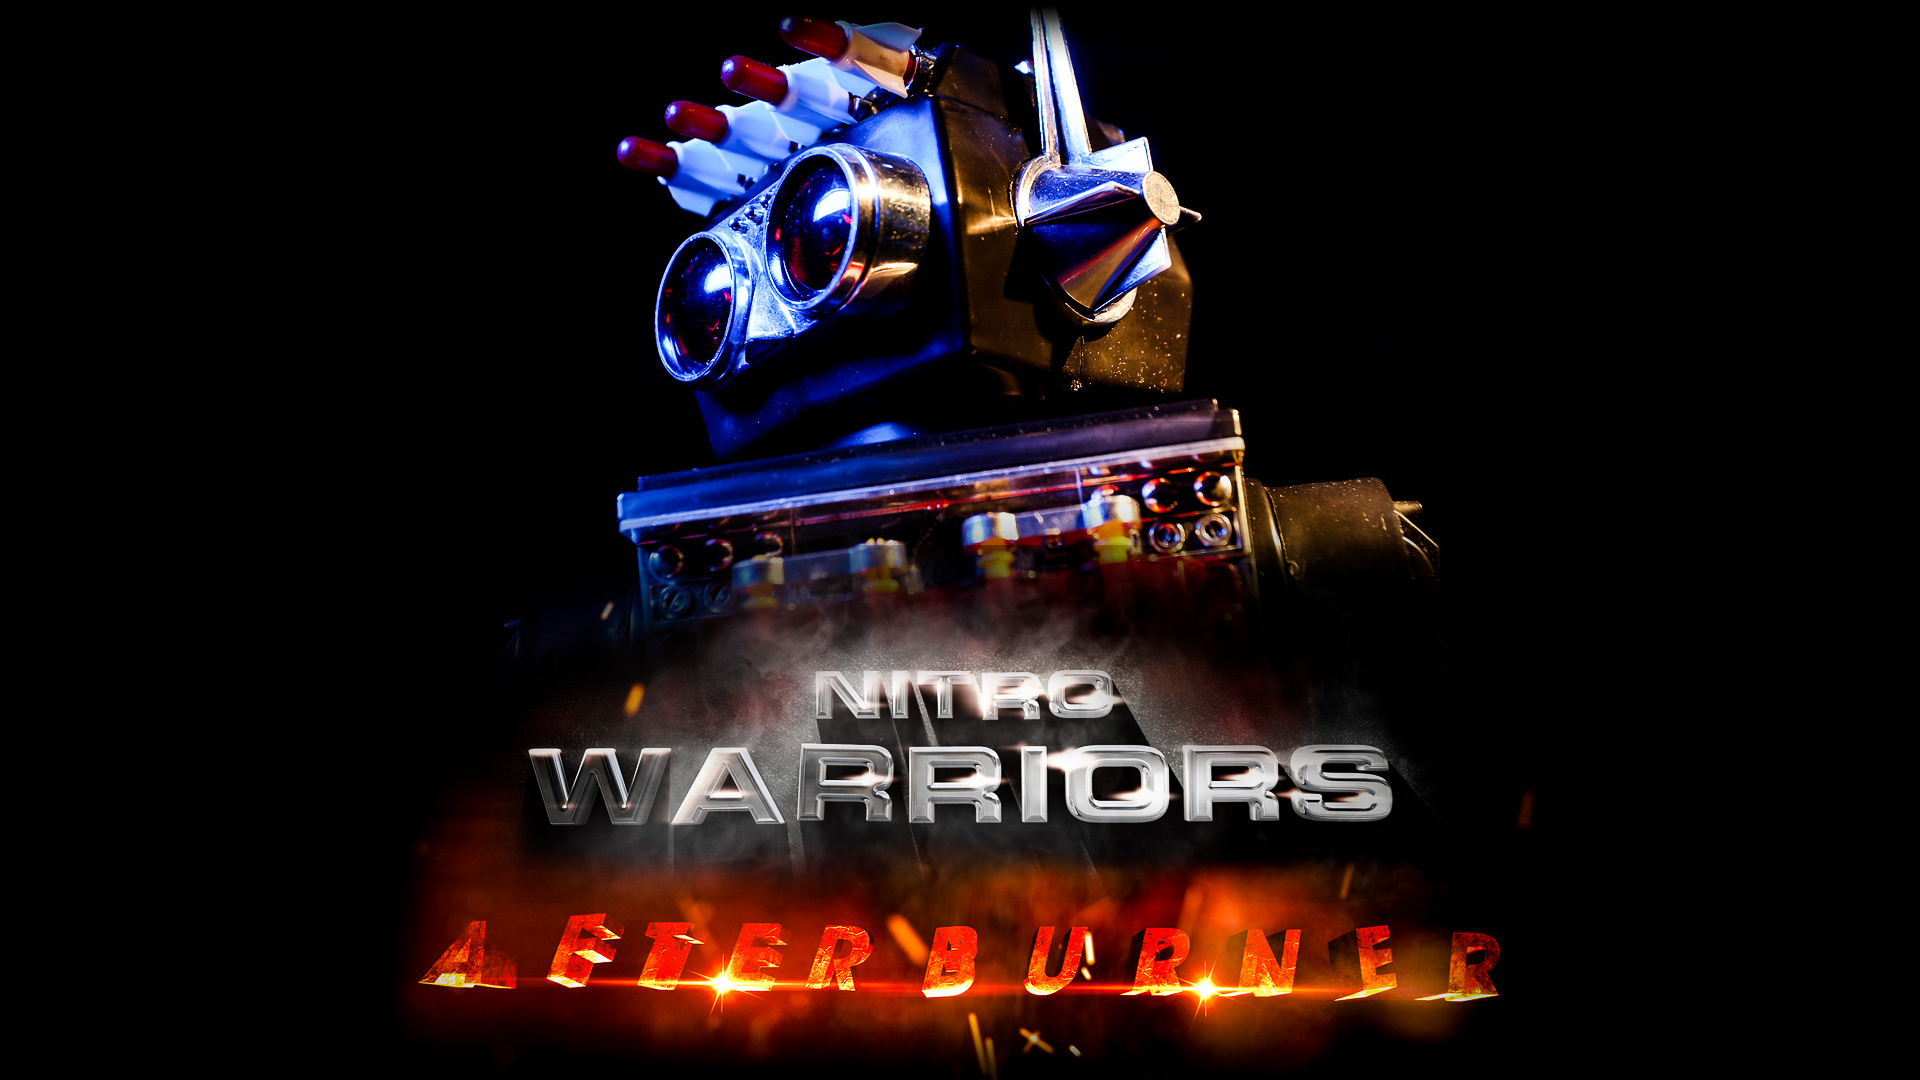 nitro warriors afterburner - The chase continues after the epic events of the critically-acclaimed 'Nitro Warriors - A Stop Motion Animated Film' and takes to the skies in 'Nitro Warriors 2: Afterburner'